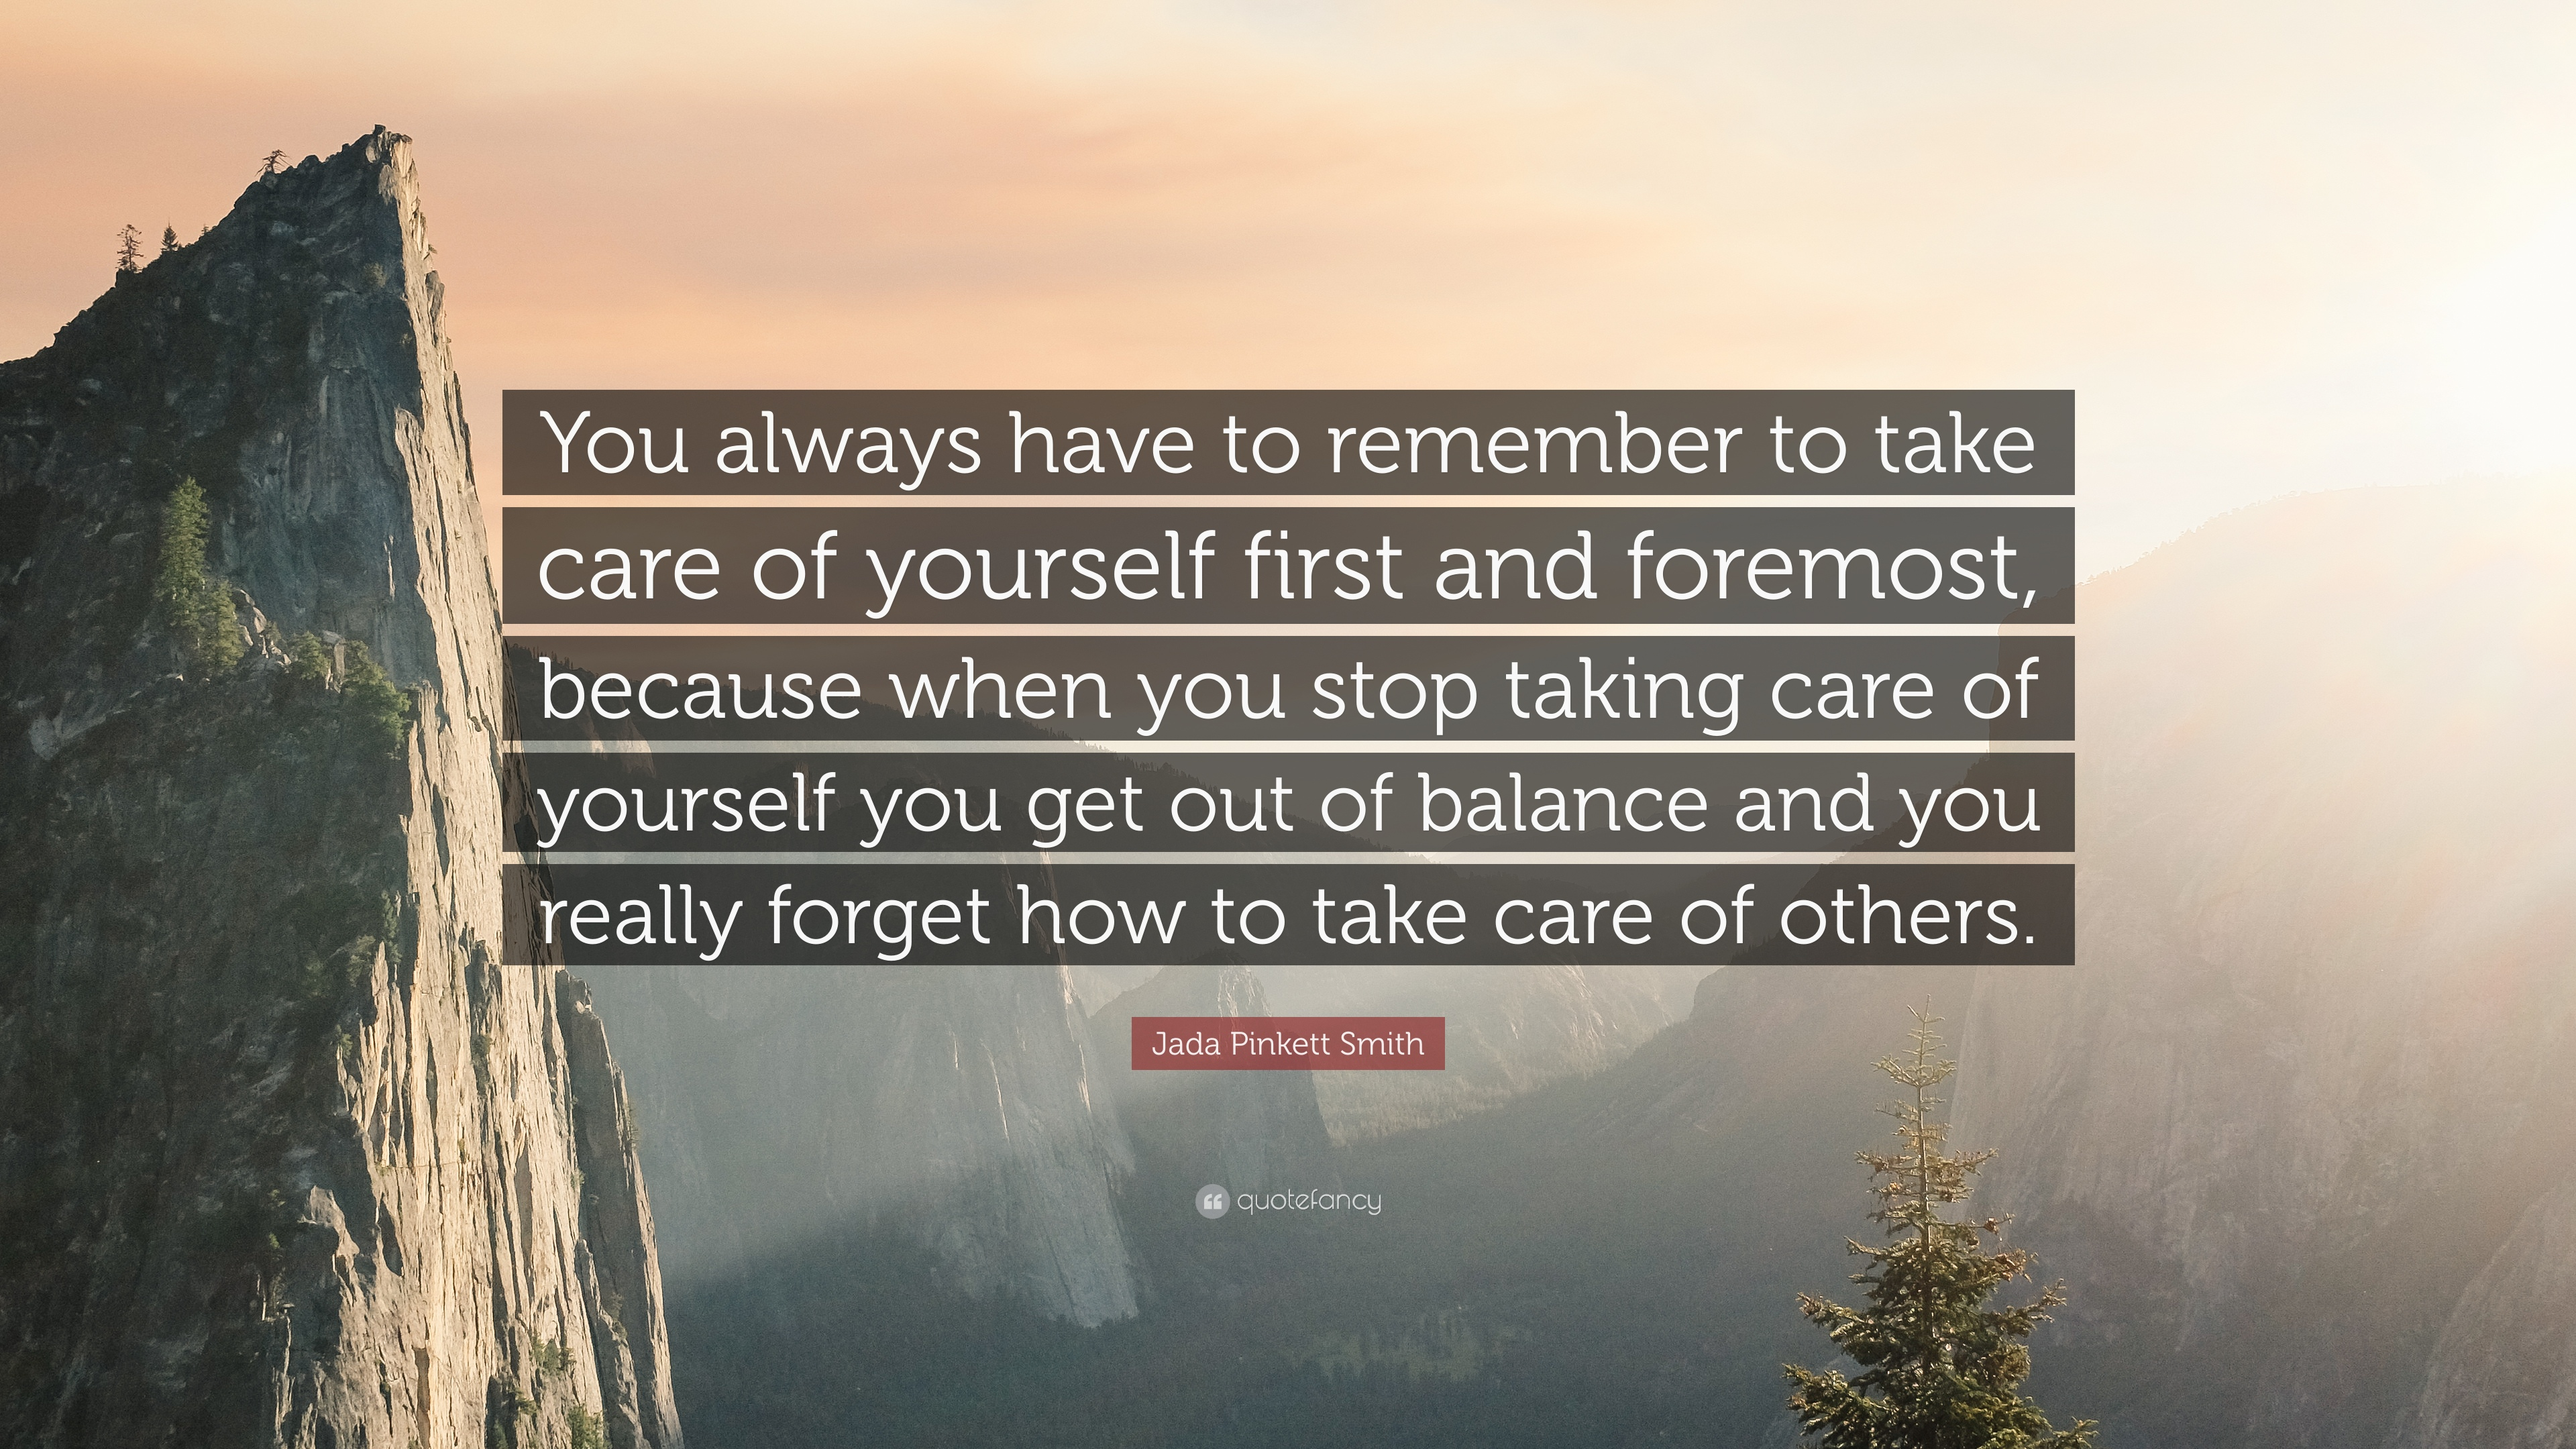 Jada Pinkett Smith Quote You Always Have To Remember To Take Care Of Yourself First And Foremost Because When You Stop Taking Care Of Yourself Y 9 Wallpapers Quotefancy